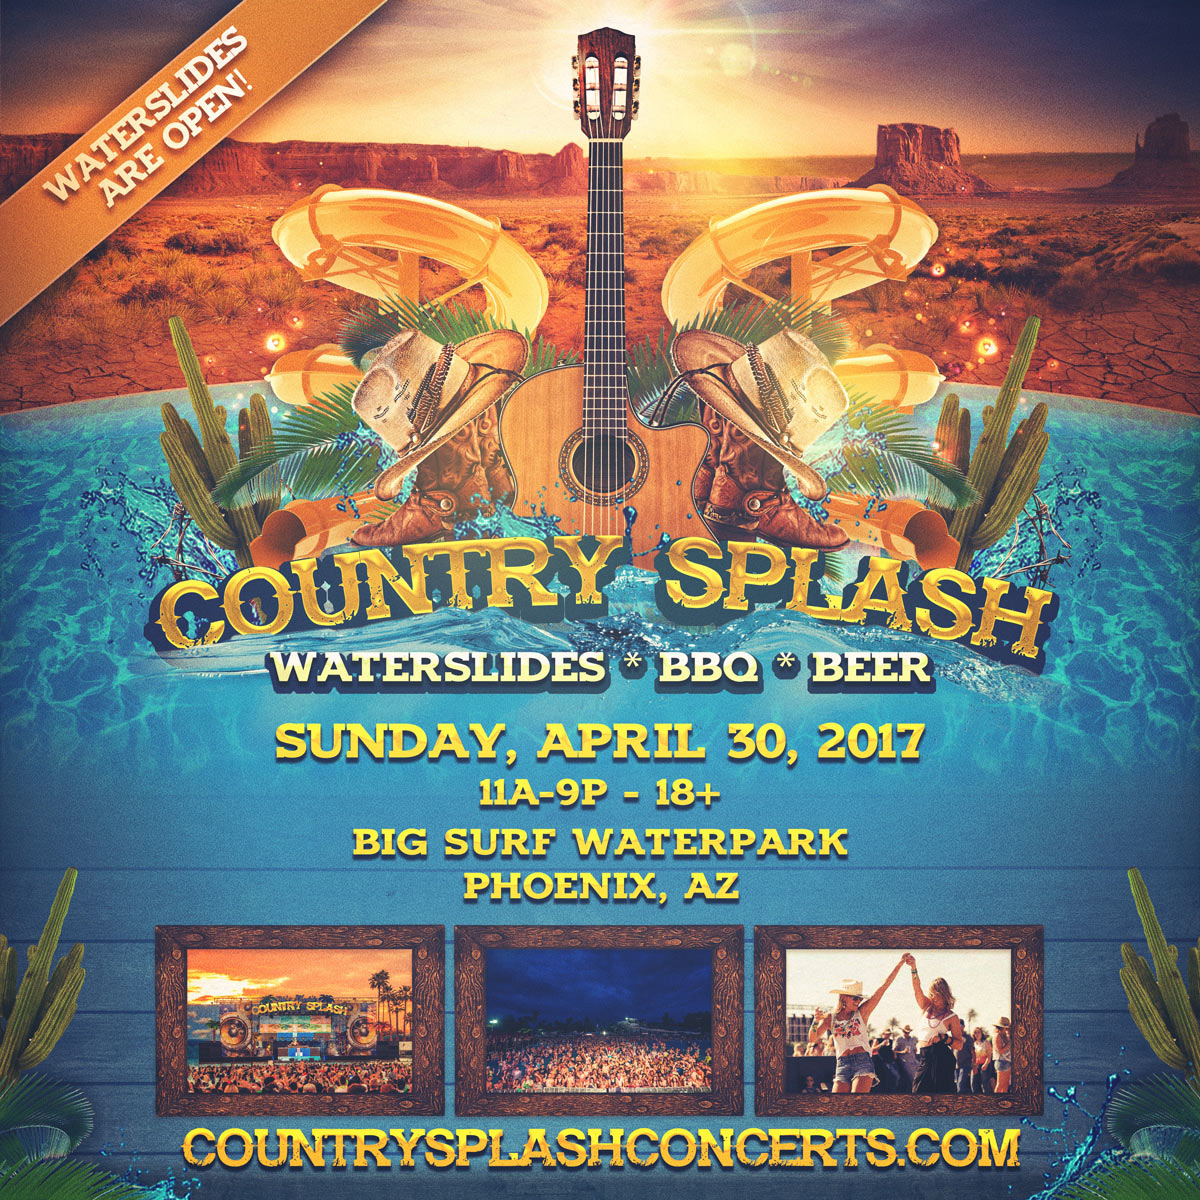 Flyer for Country Splash